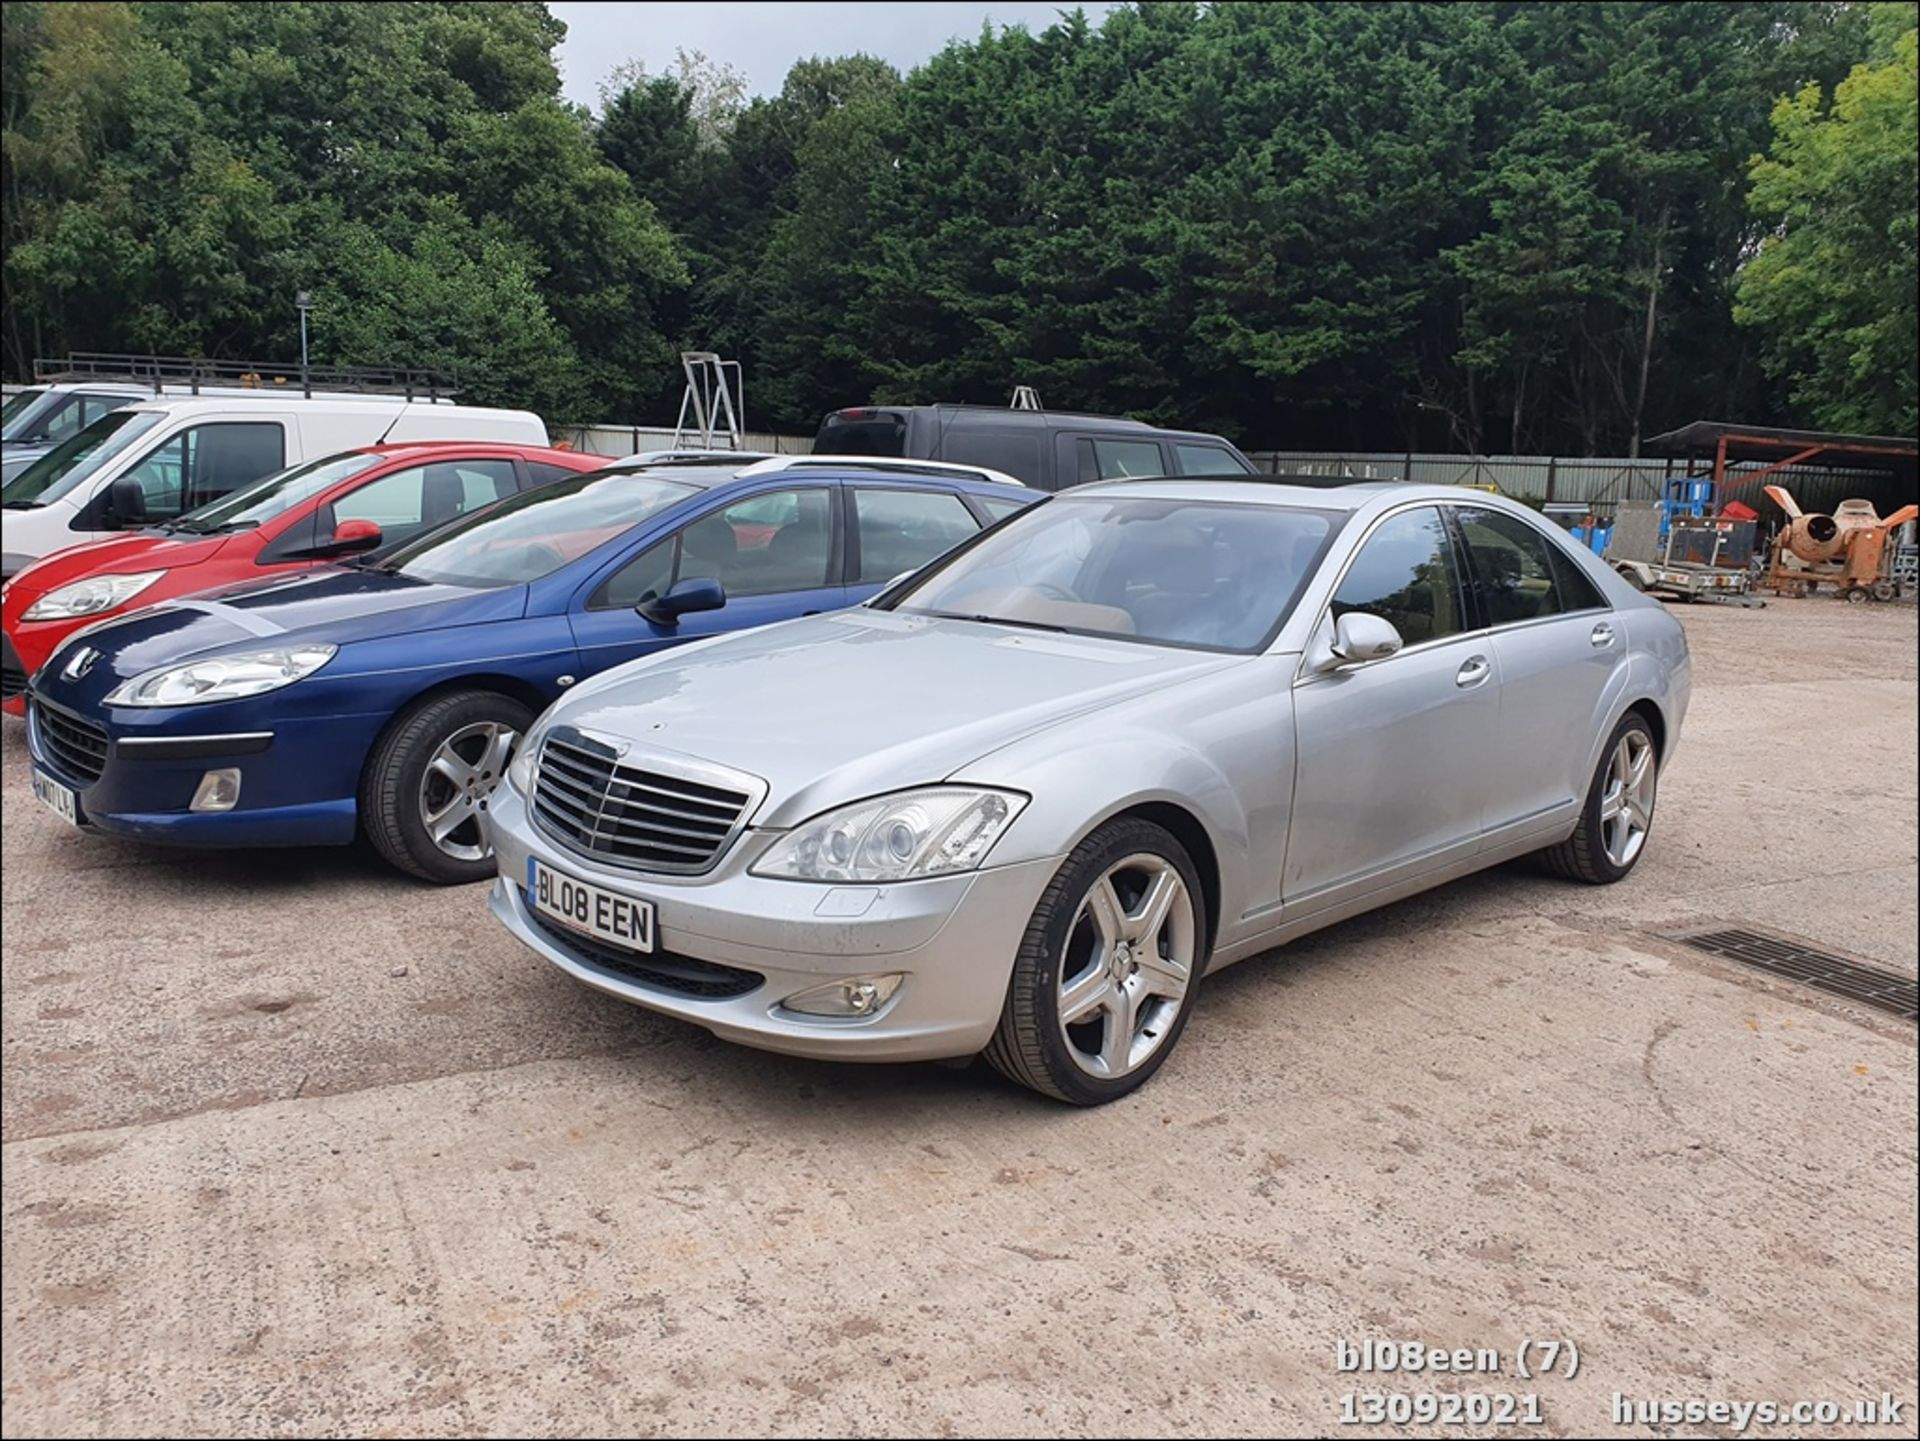 08/08 MERCEDES S320 CDI AUTO - 2987cc 4dr Saloon (Silver, 205k) - Image 7 of 16